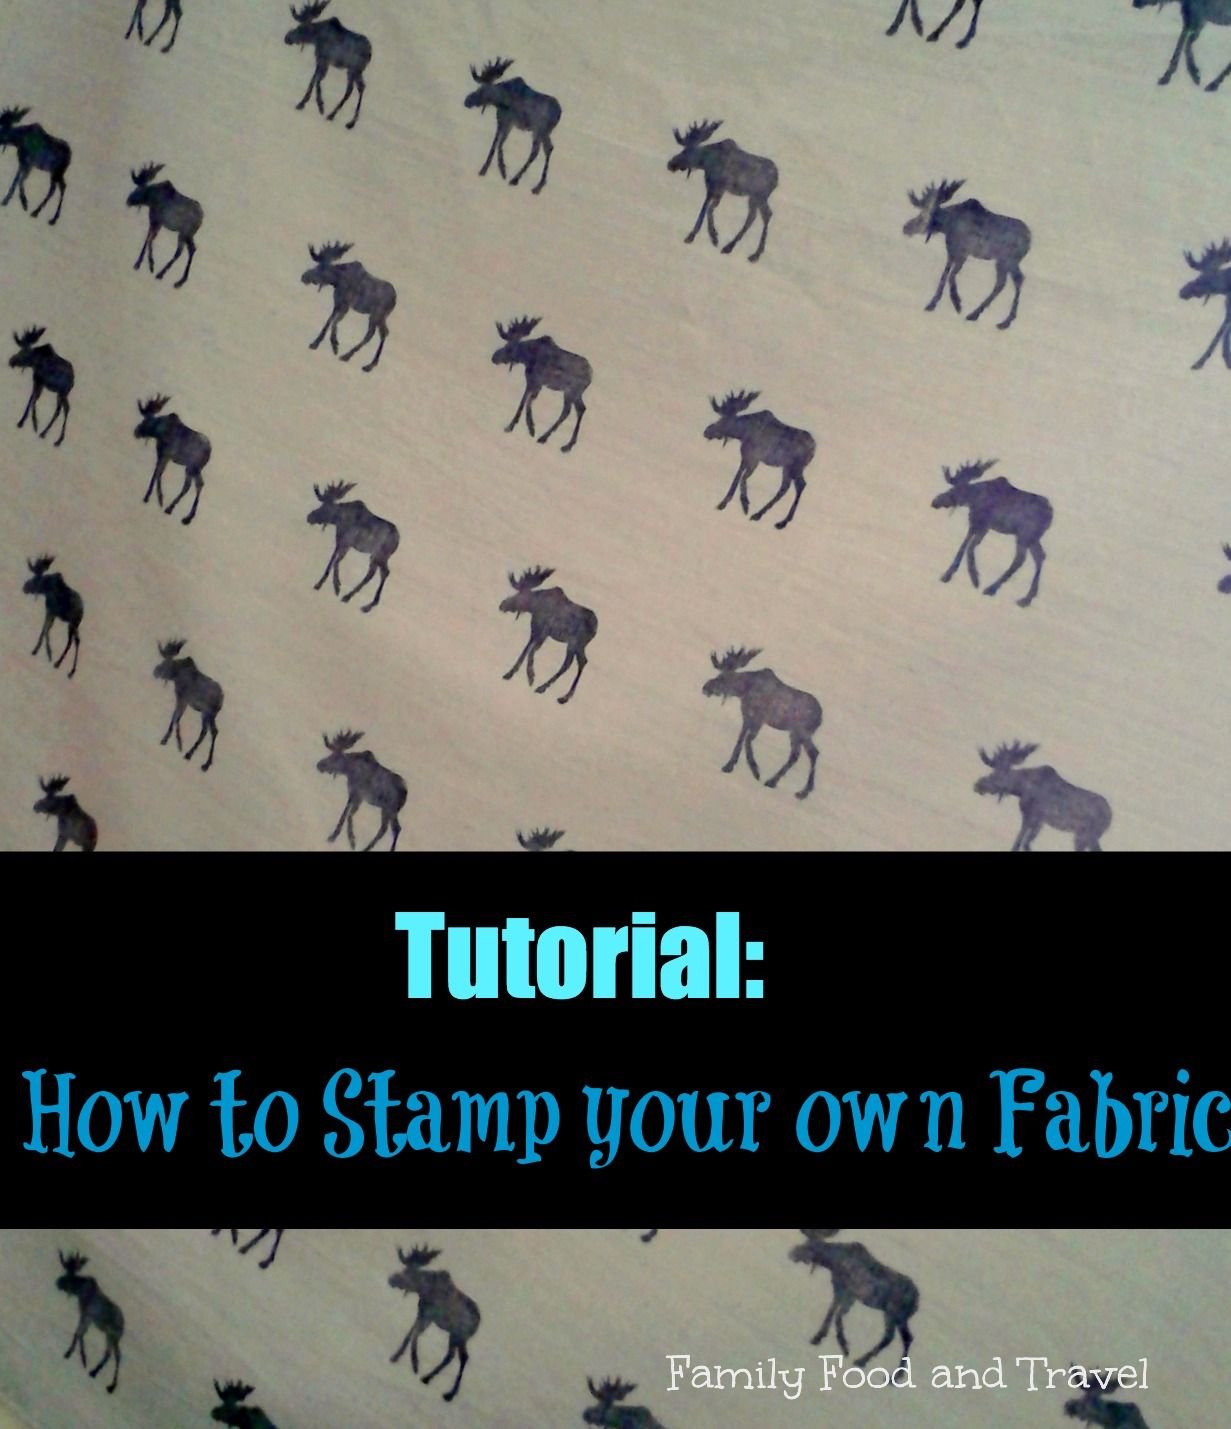 DIY Fabric Stamping - Family Food And Travel #fabricstamping